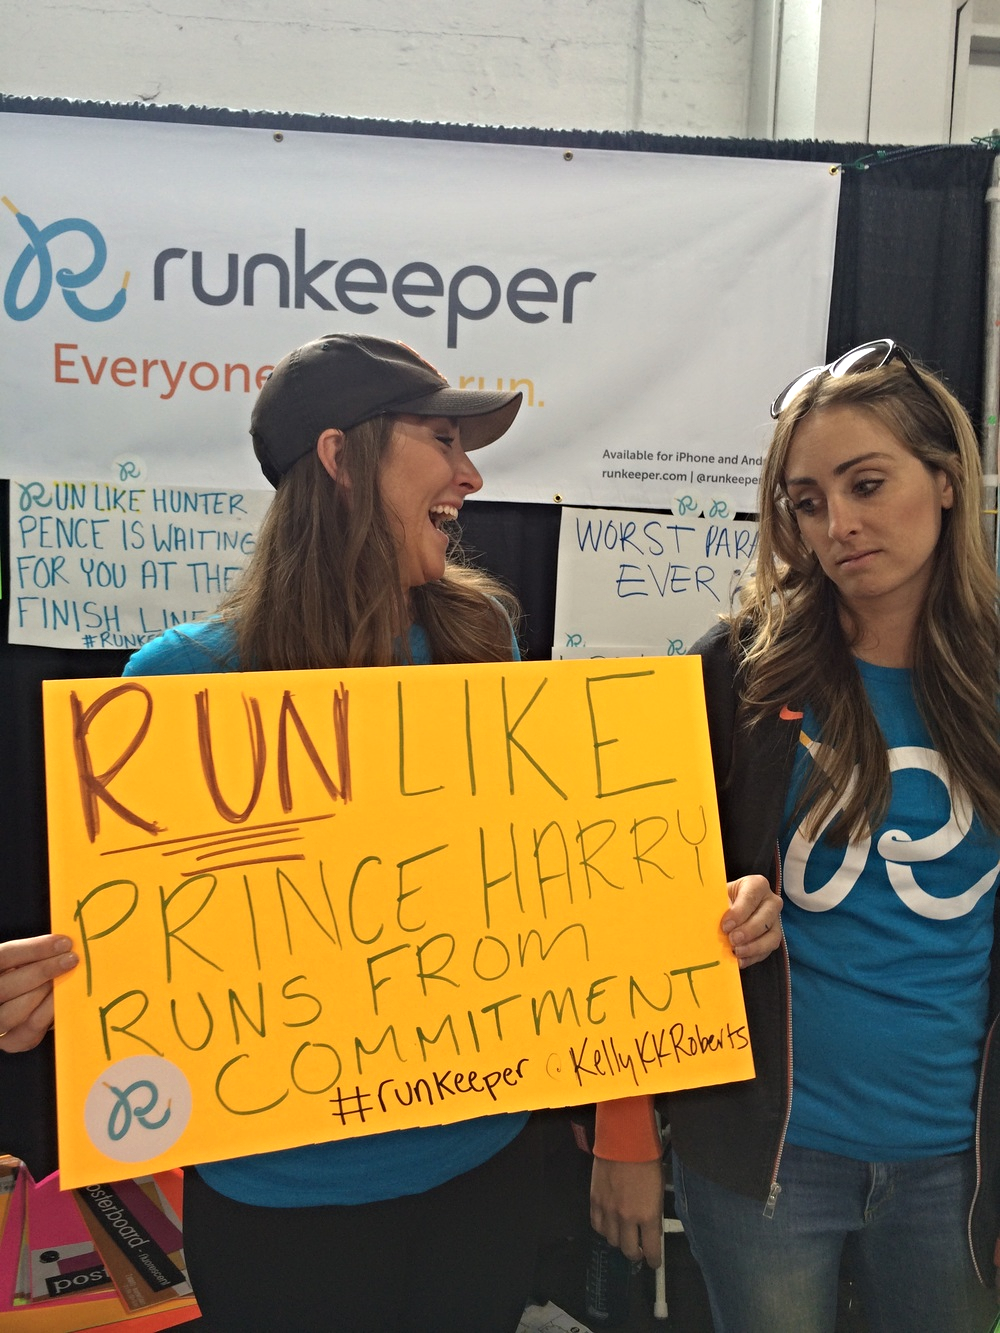 #RunSelfieRepeat best running signs